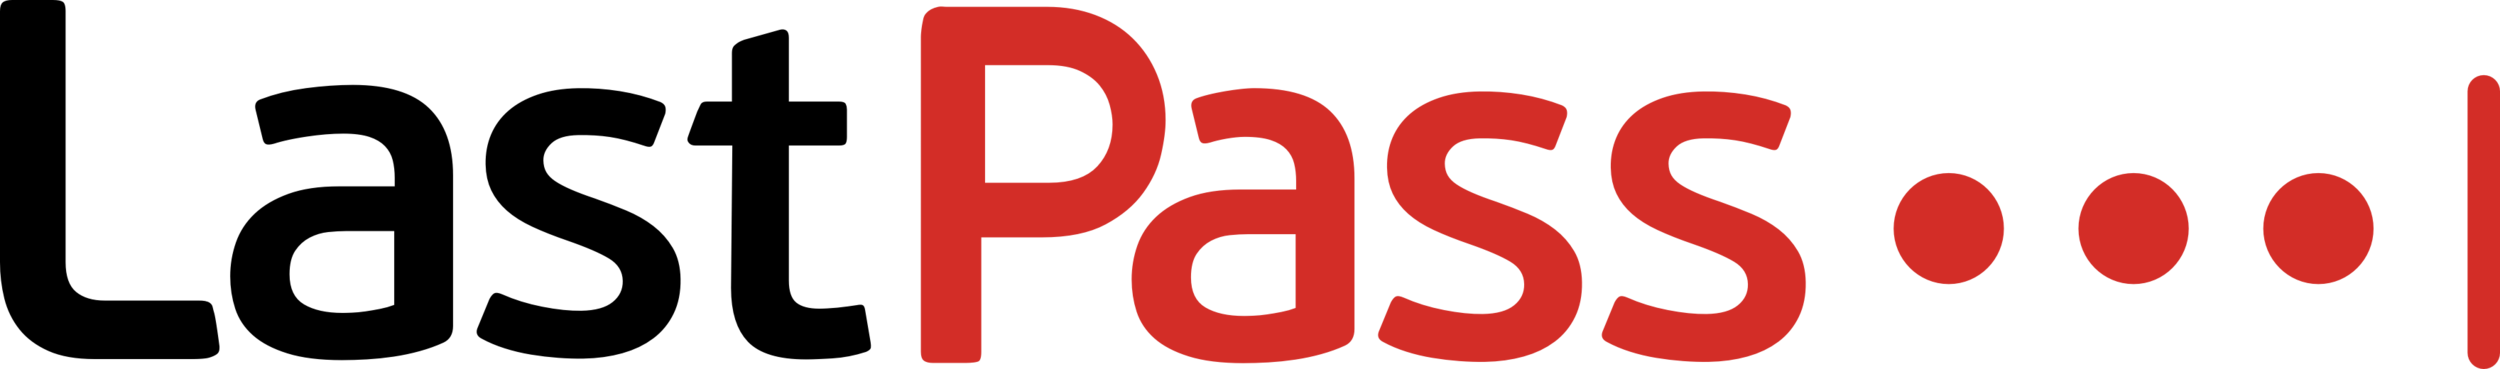 I'm not affiliated with LassPass,Except for a long time paying customer.